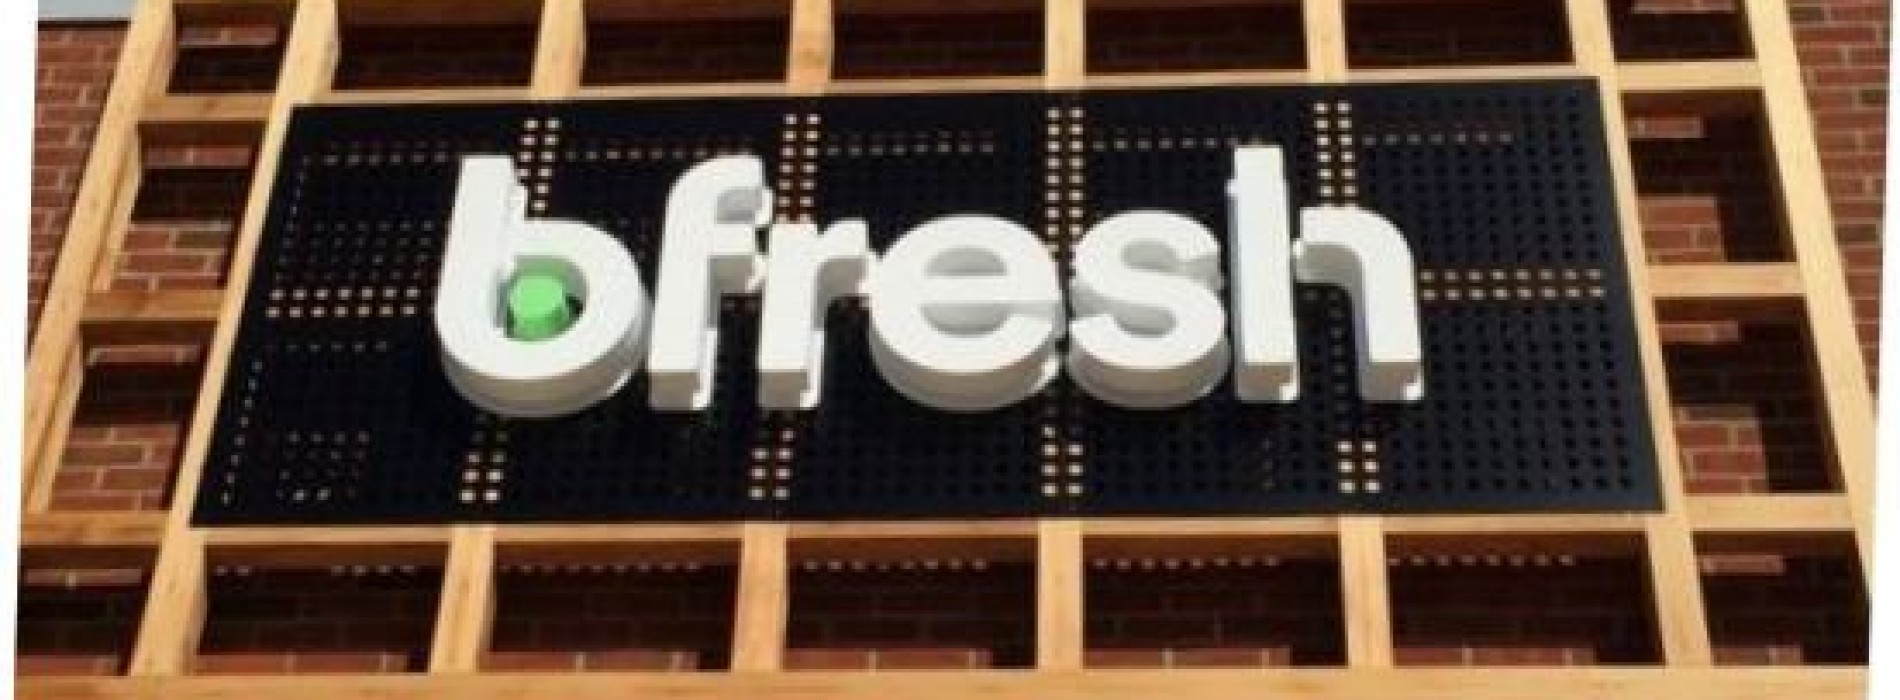 Ahold's bfresh Urban Small Concept Store – Store of the Future?